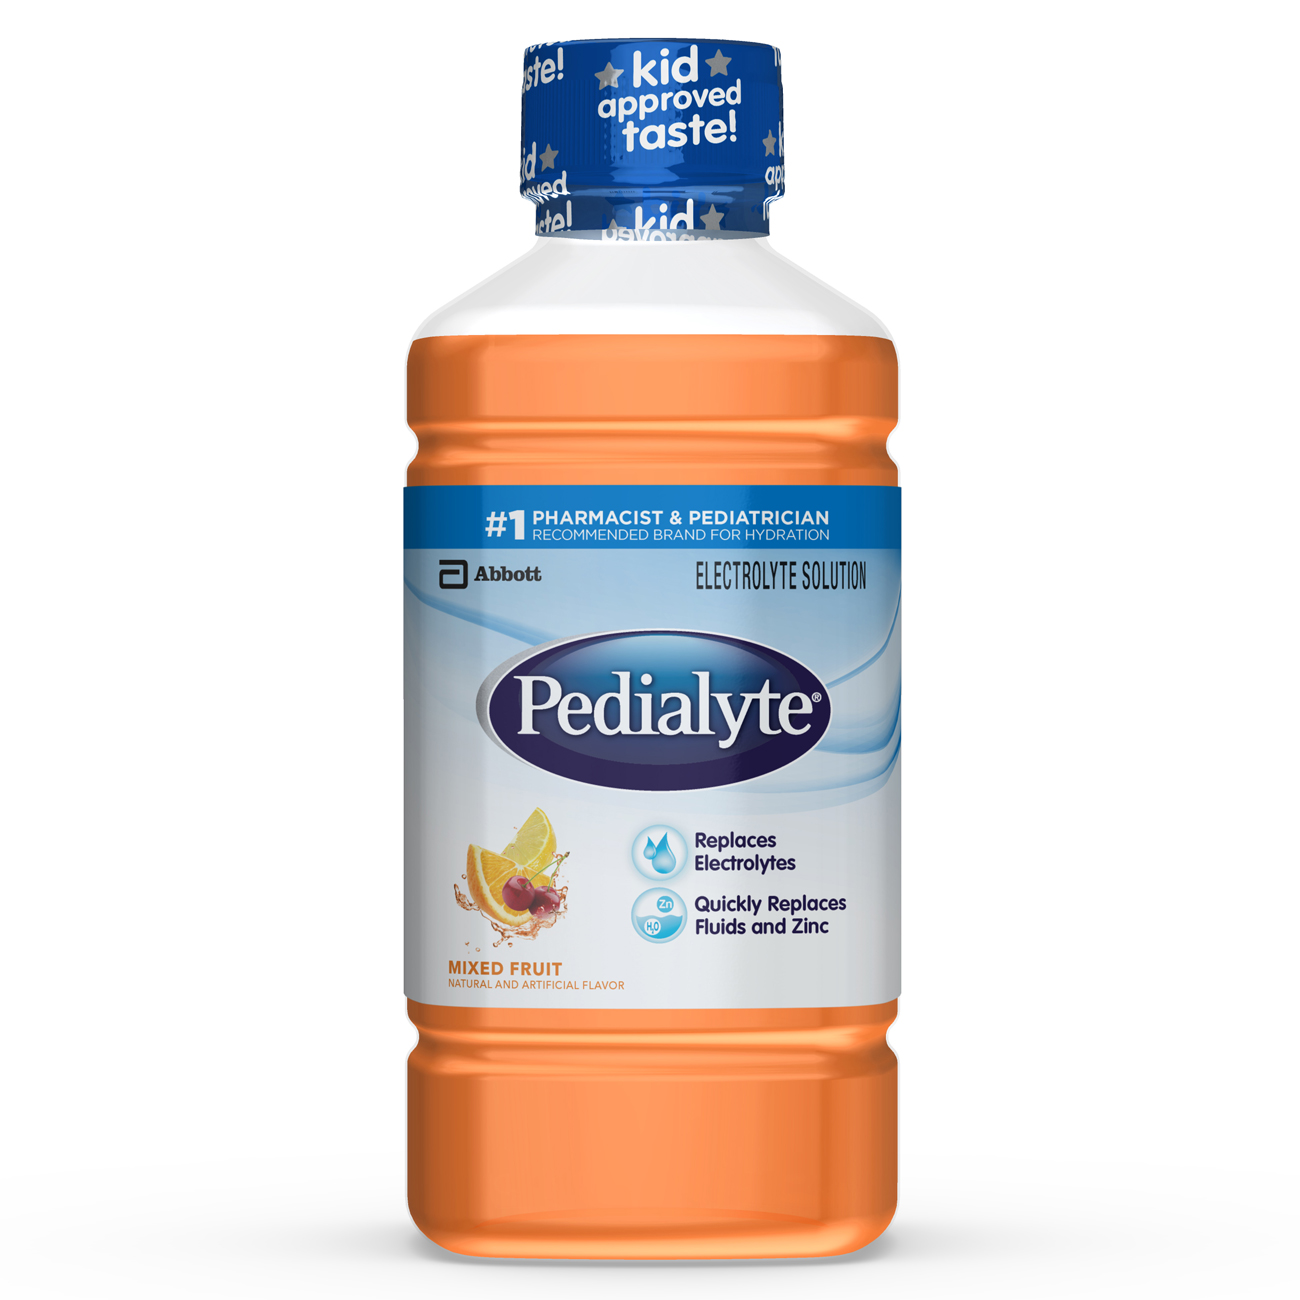 Pedialyte Electrolyte Solution Electrolyte Drink Mixed